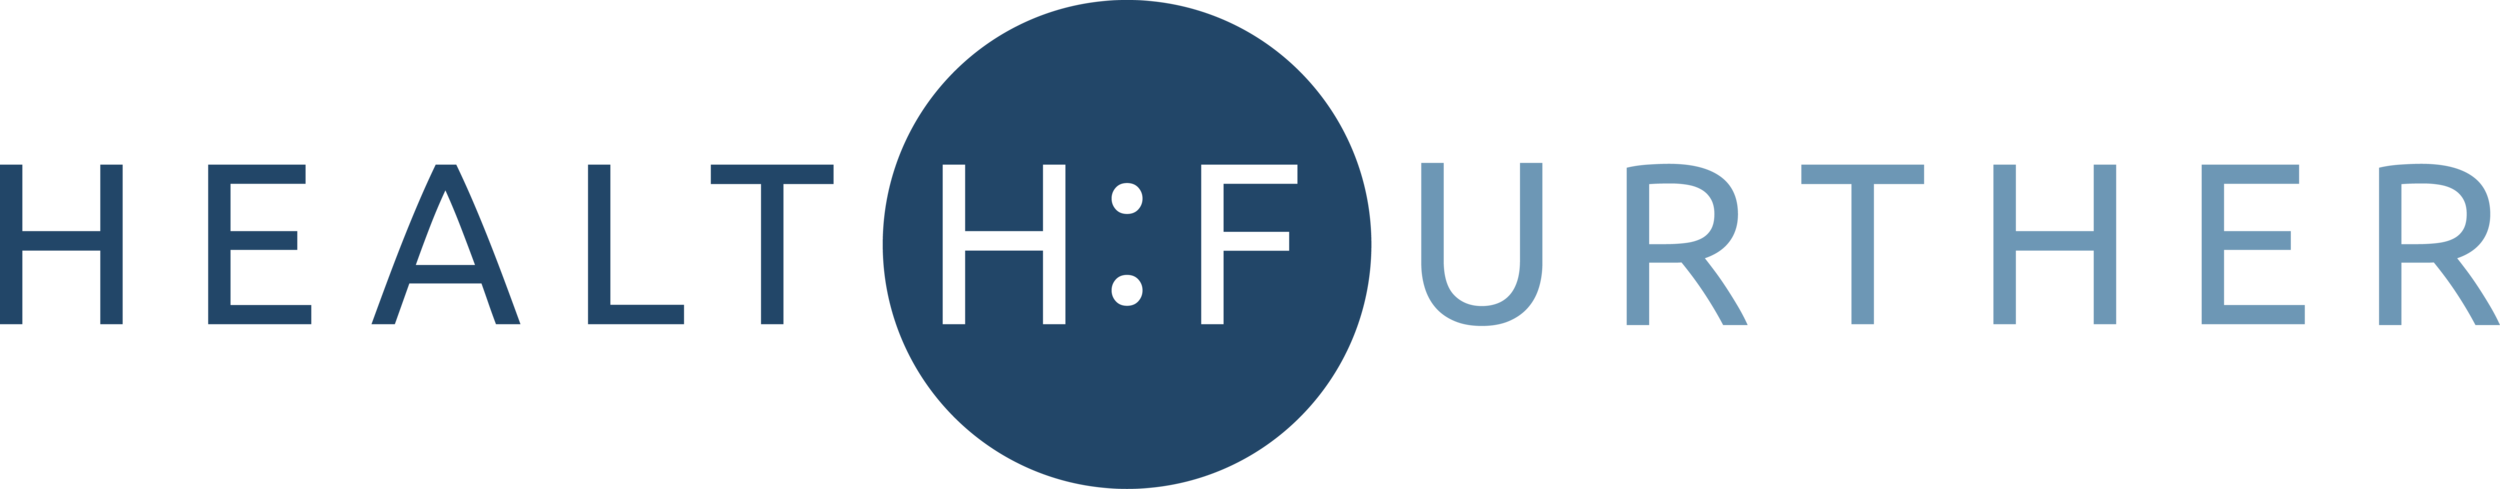 health further logo new.png